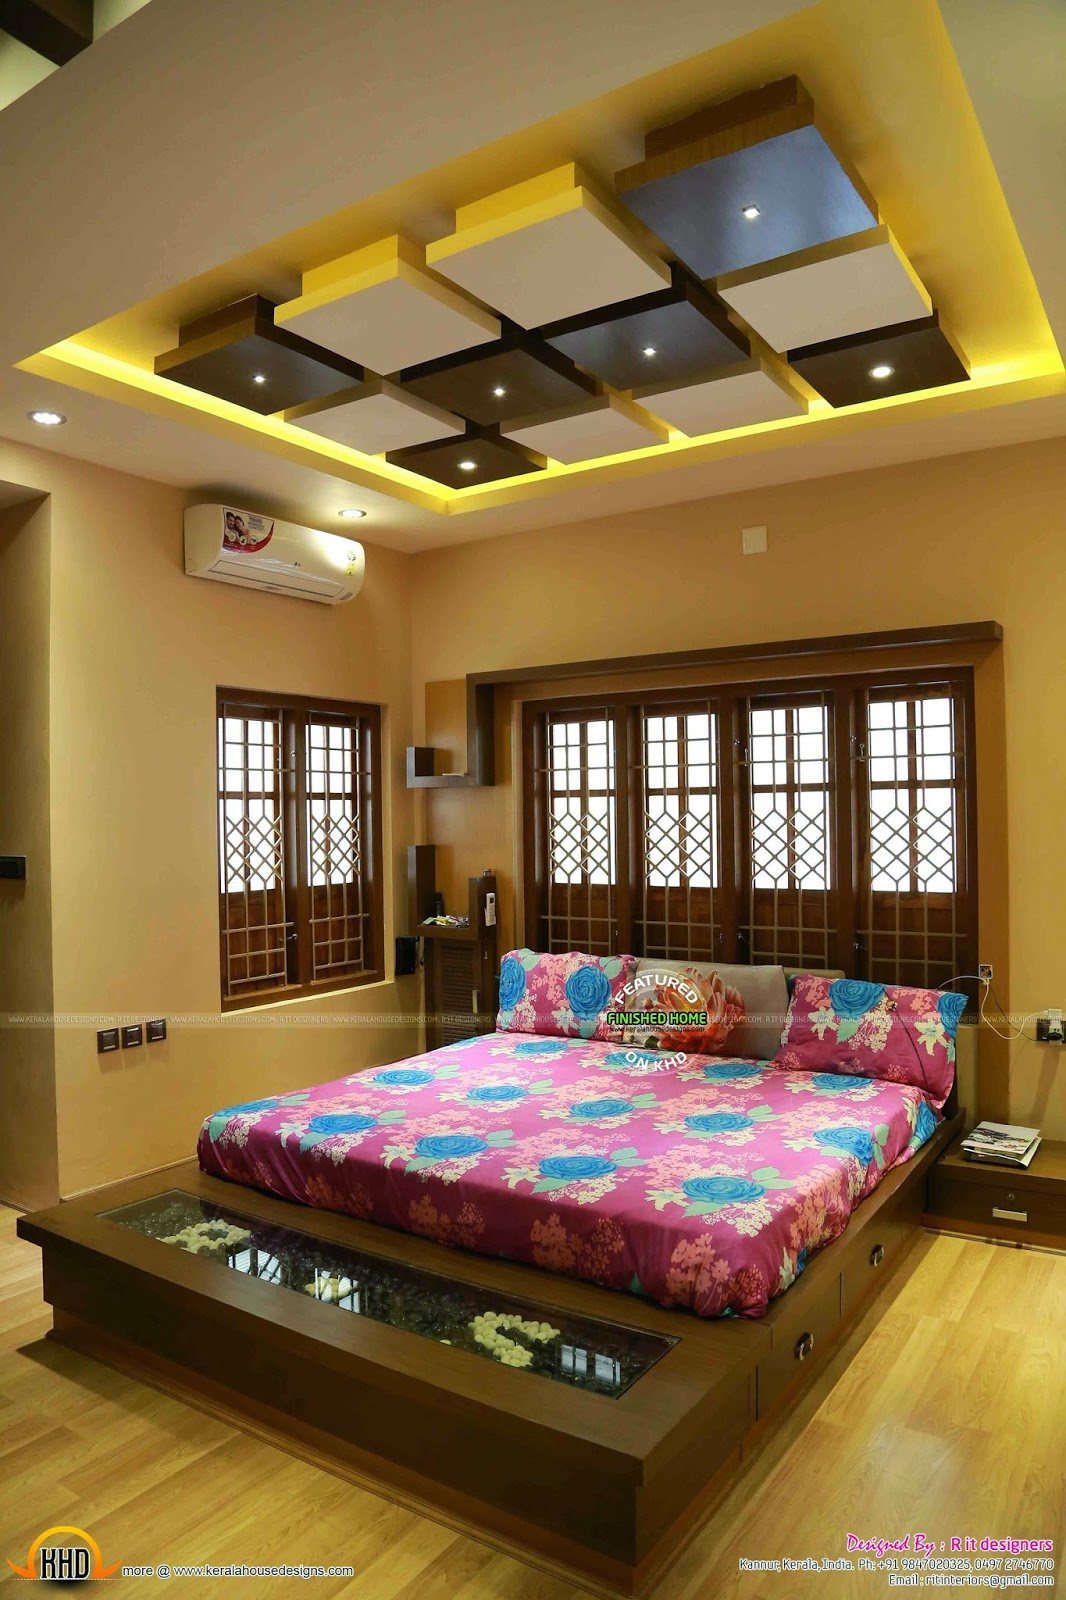 Finished Interior Designs In Kerala: Finished Interiors And Exterior Of A House In Kerala